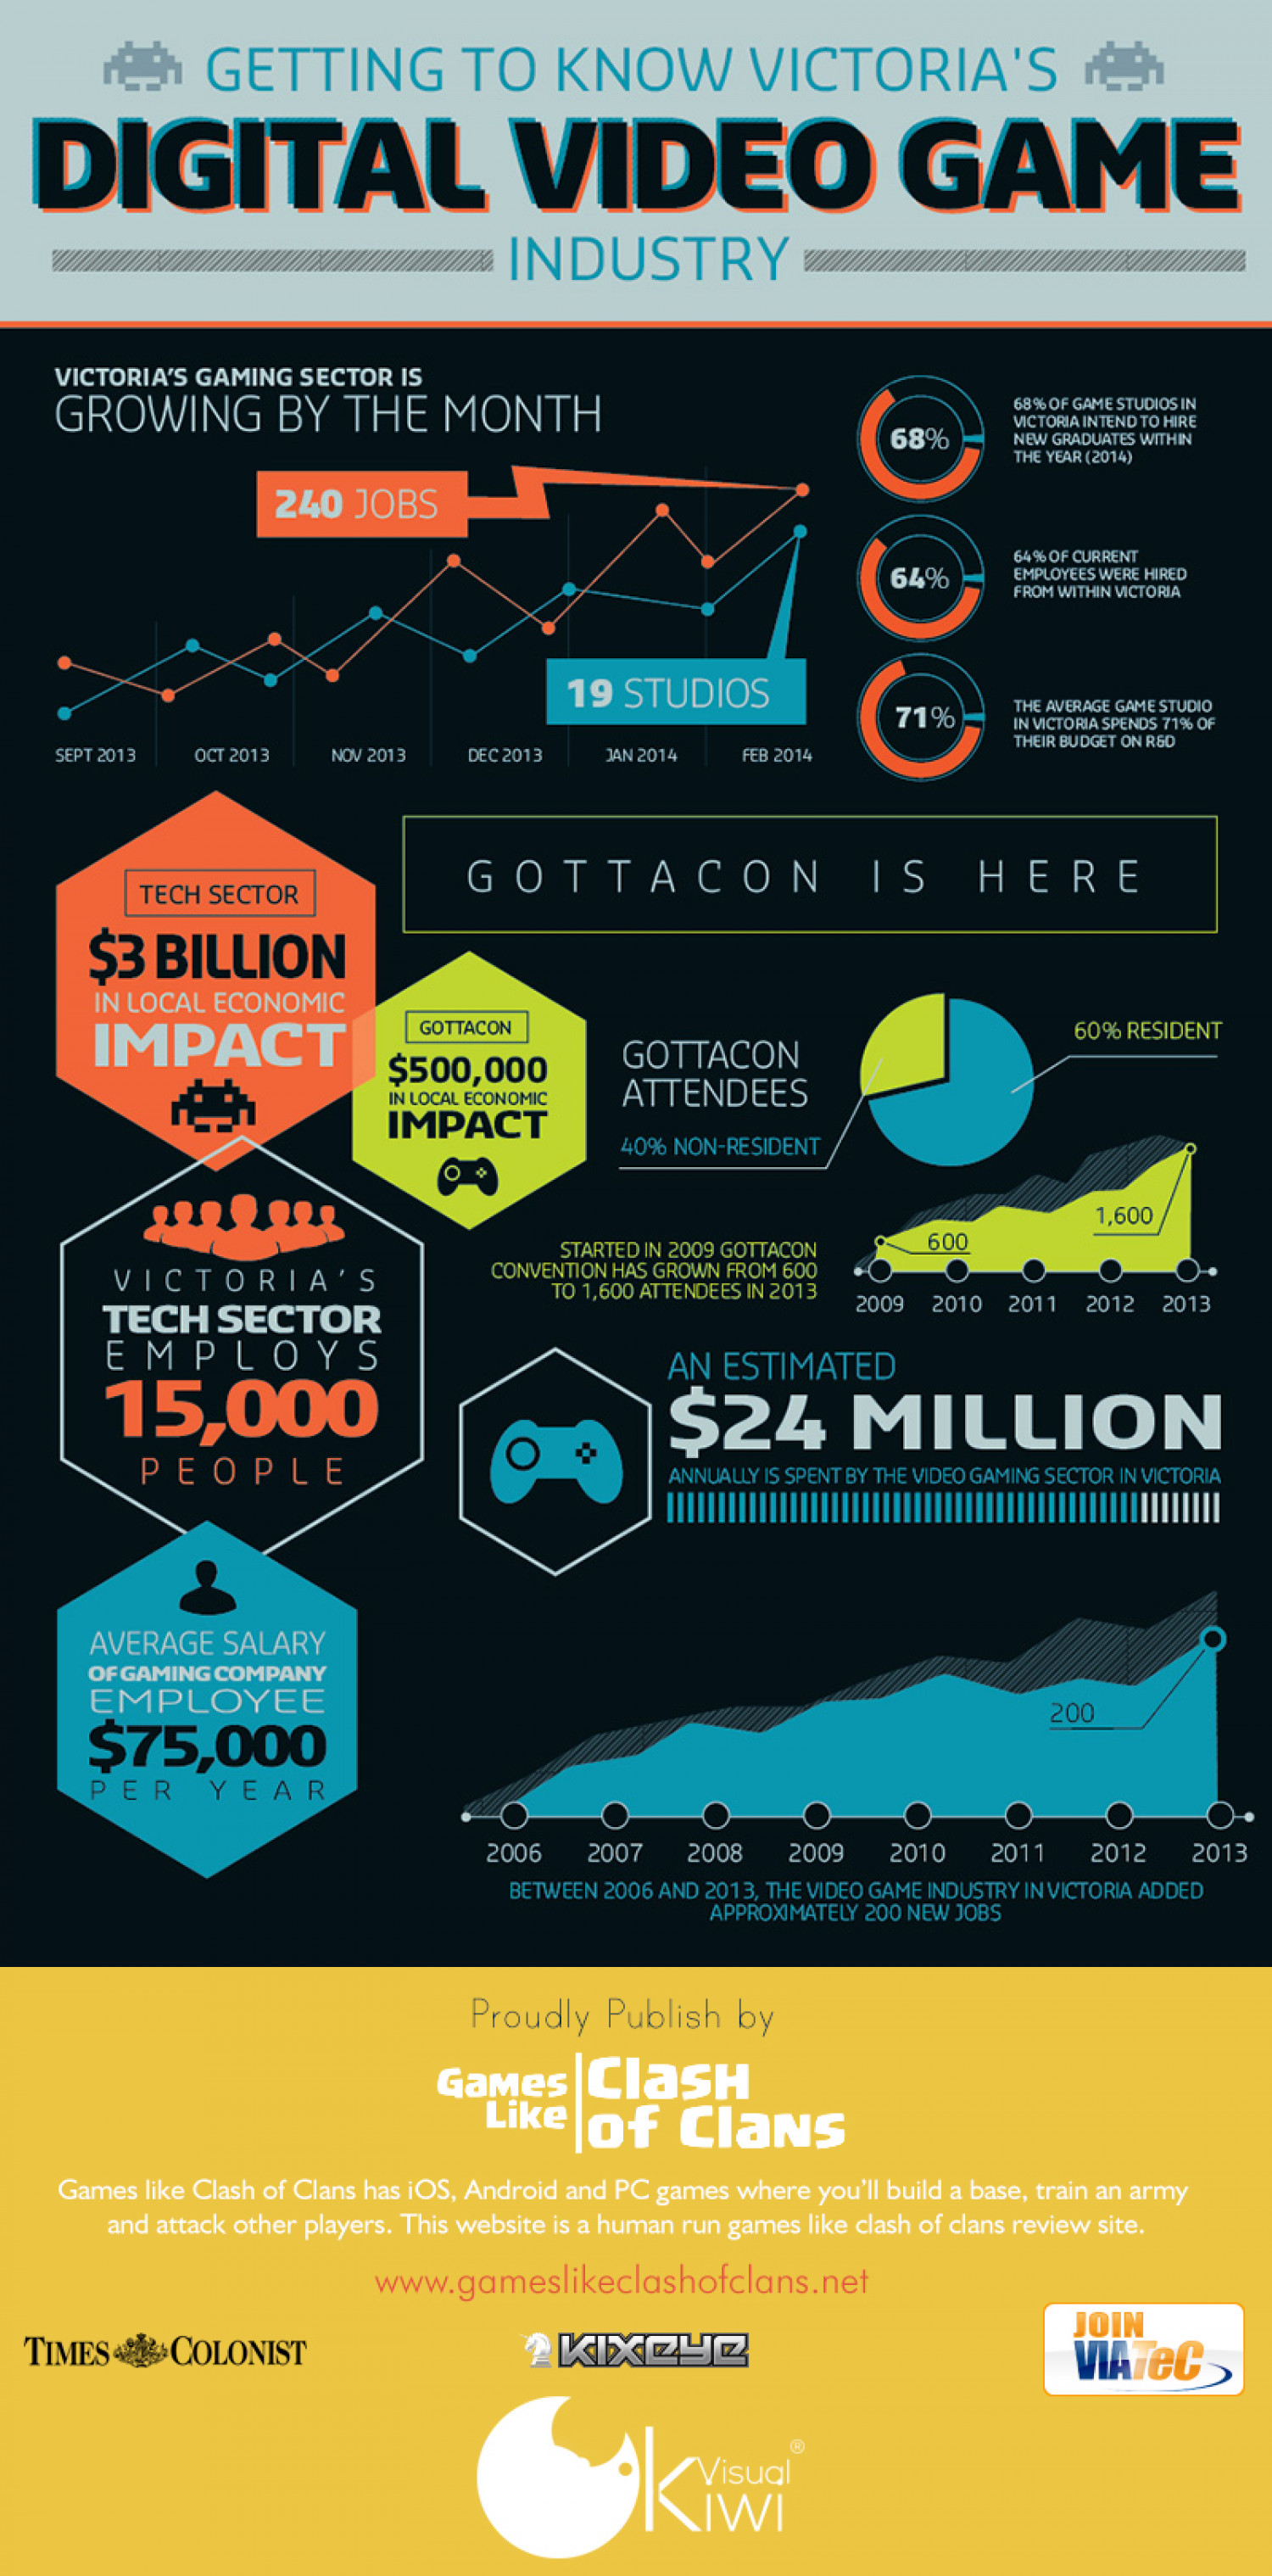 Digital Video Game Industry: 2014 Infographic